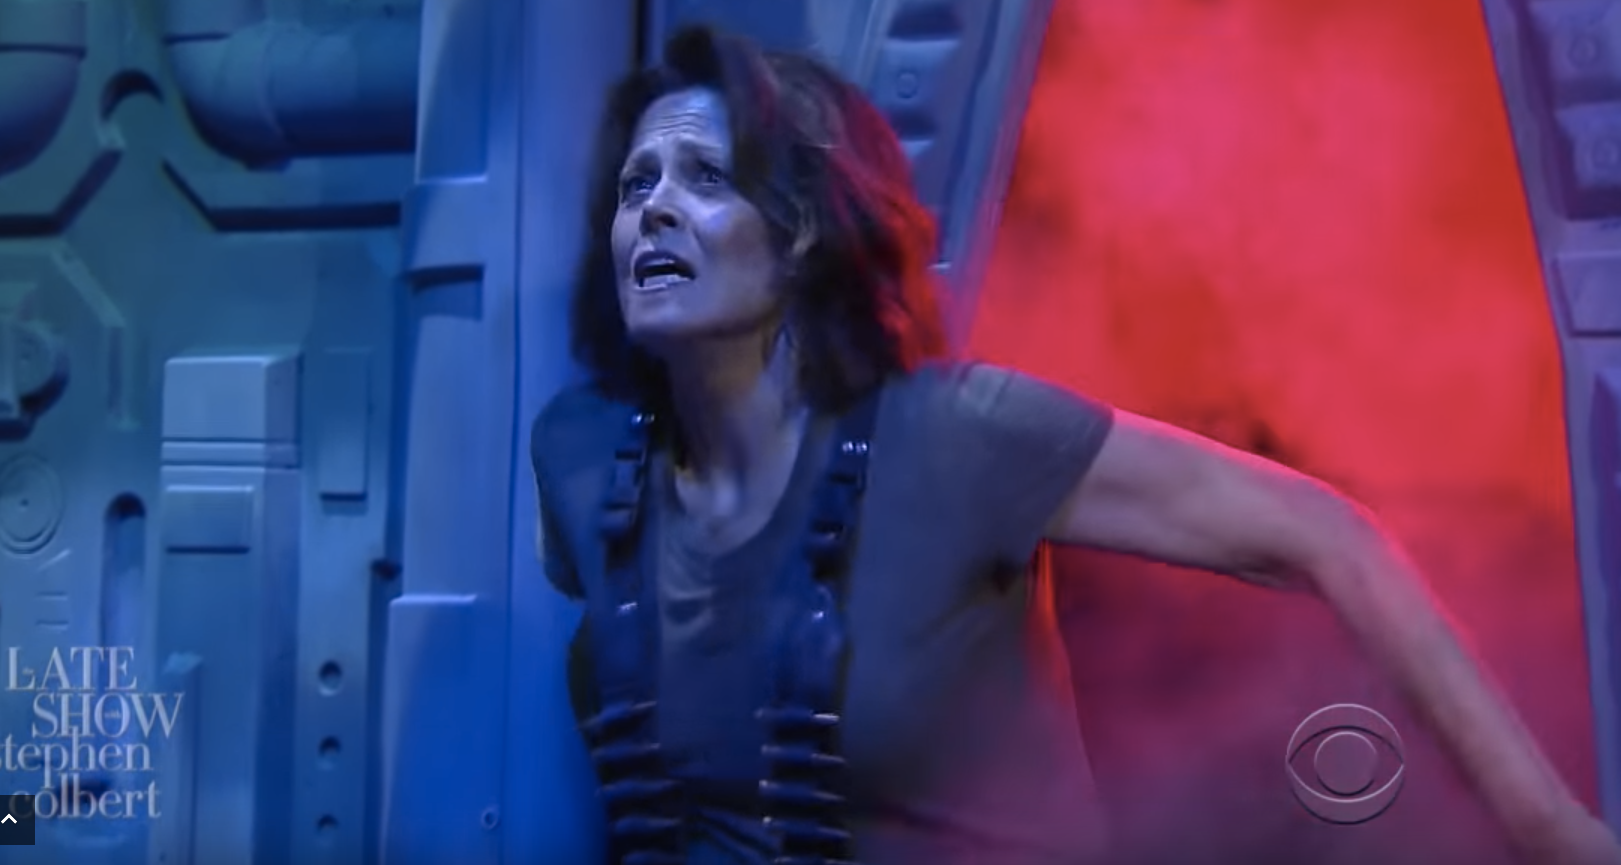 Sigourney Weaver reprising her most famous role as Ellen Ripley (CBS)